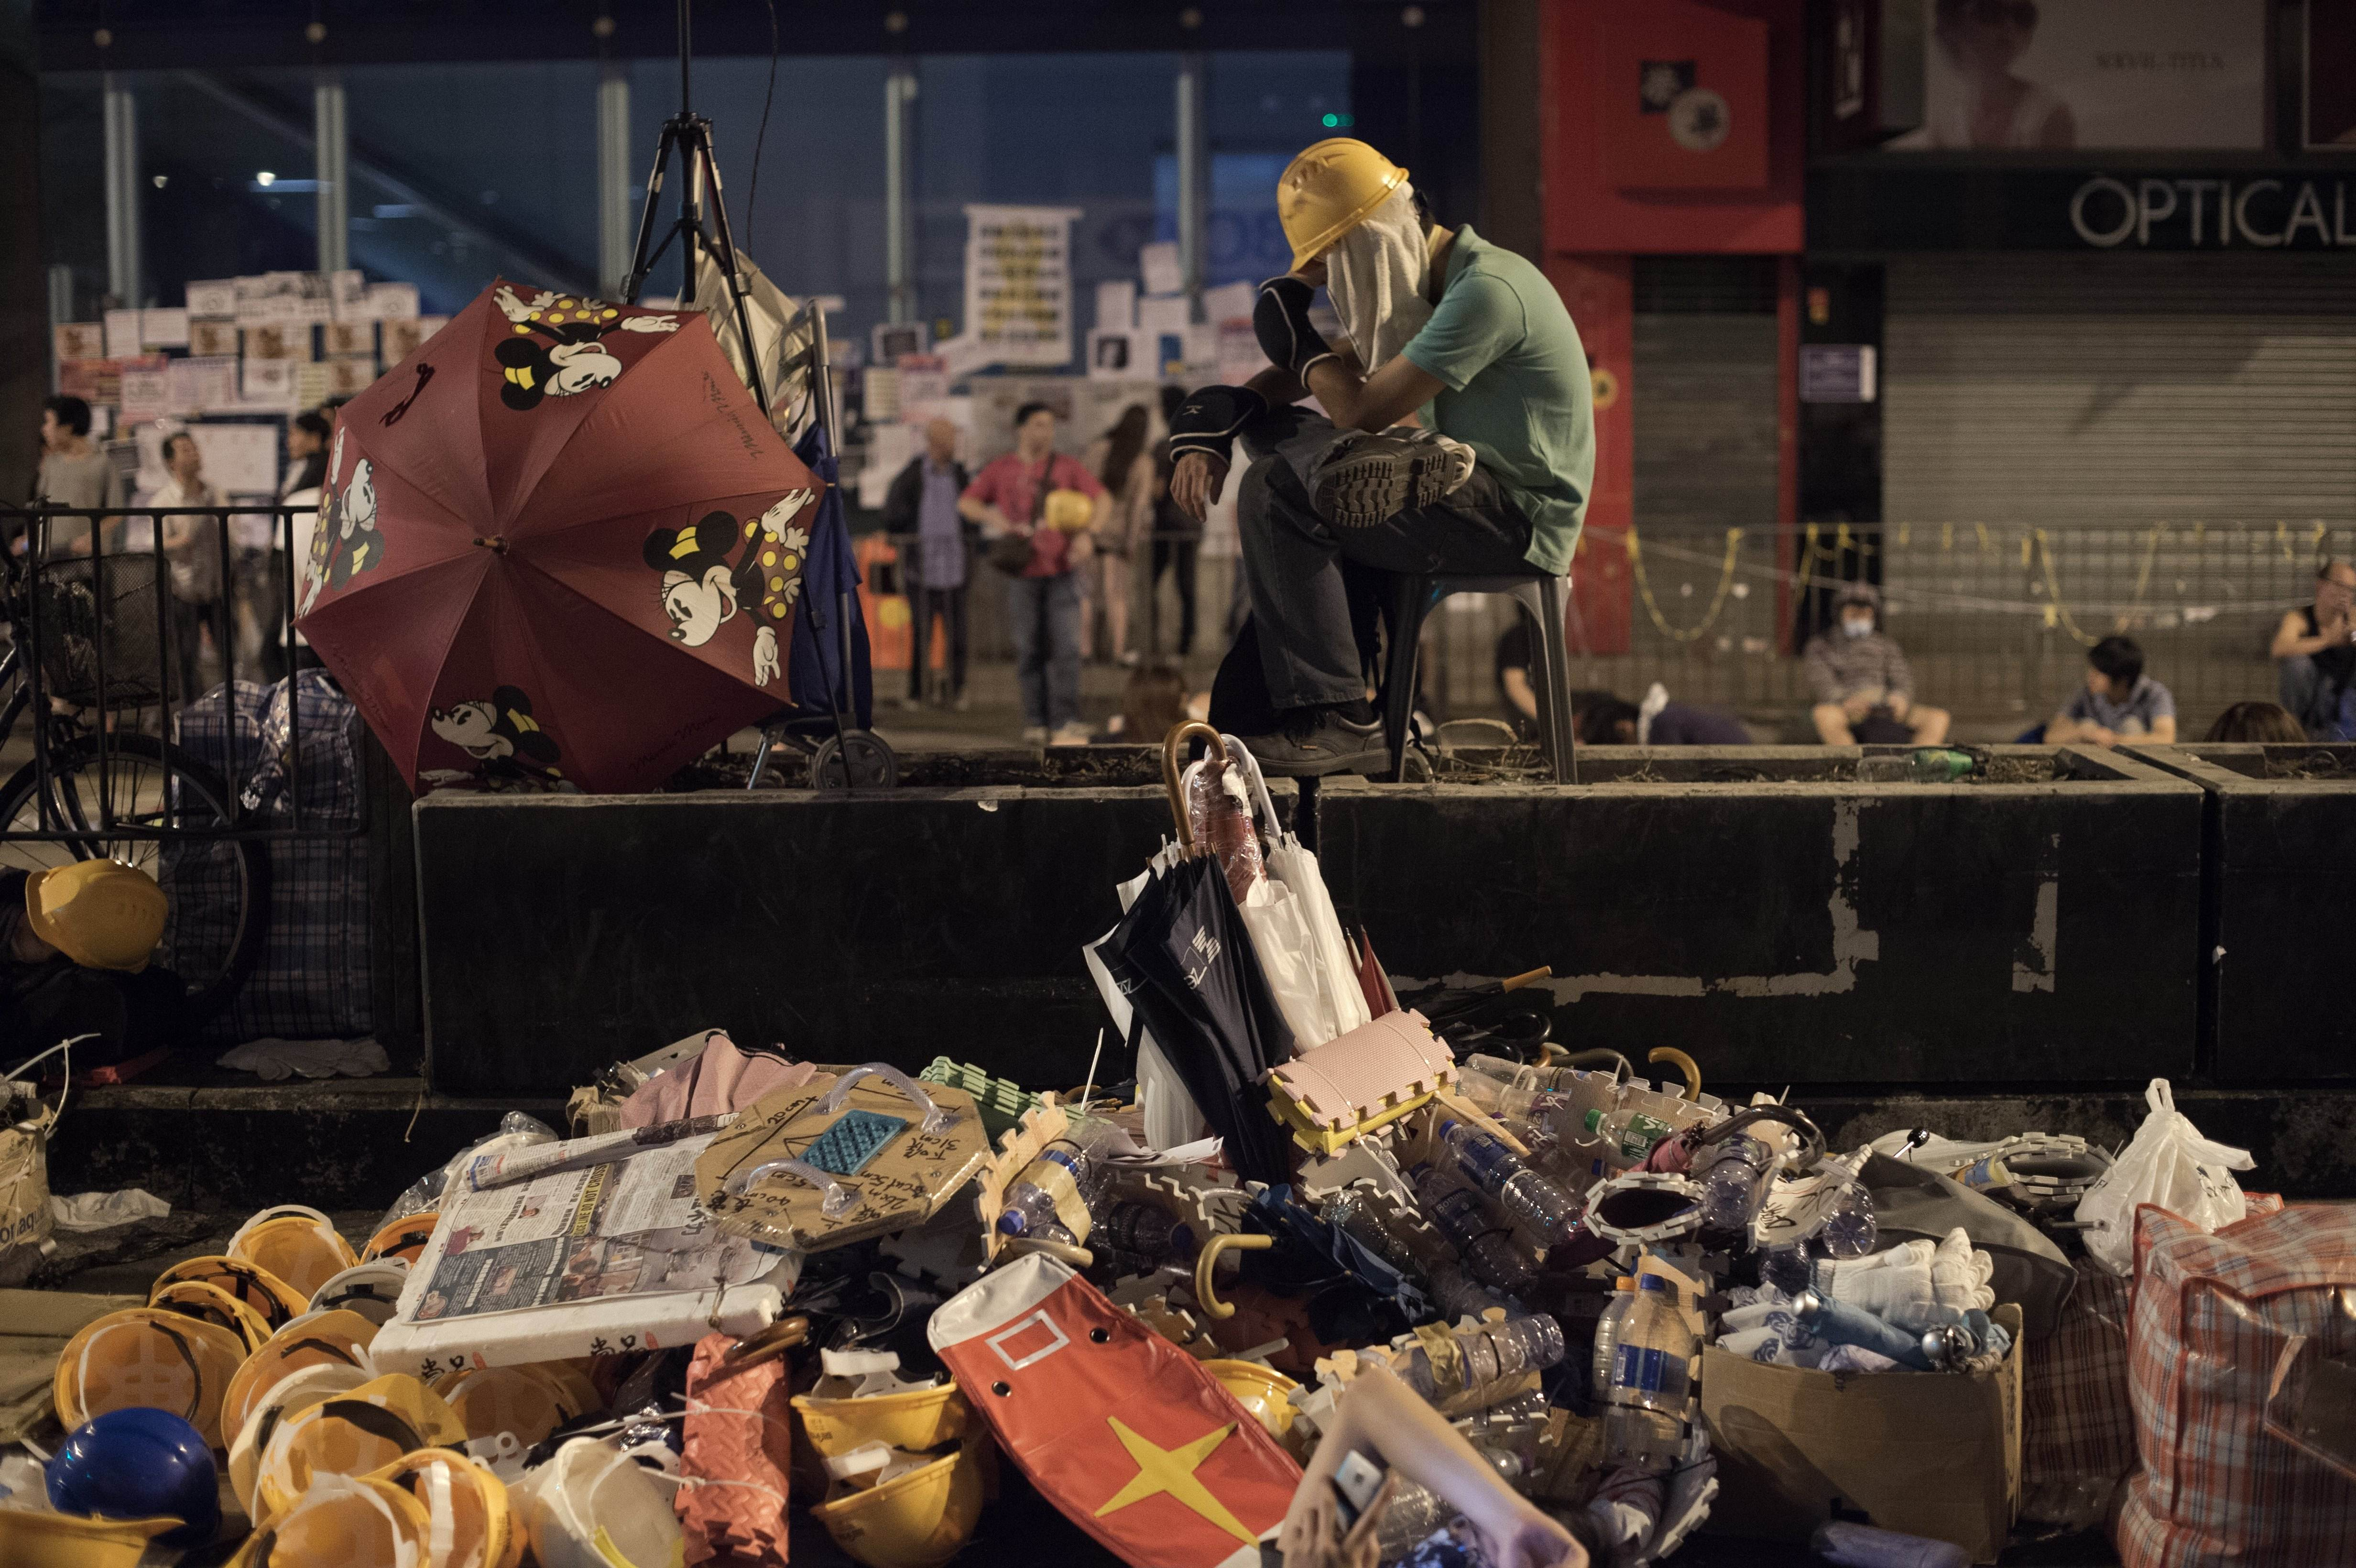 A pro-democracy protester sits inside barricades in the Mong Kok district of Hong Kong early Tuesday. Pro-democracy leaders Monday angrily denied claims by the city's chief executive that 'external forces' are orchestrating their mass rallies, ahead of talks intended to end three weeks of political stalemate. | AFP-JIJI